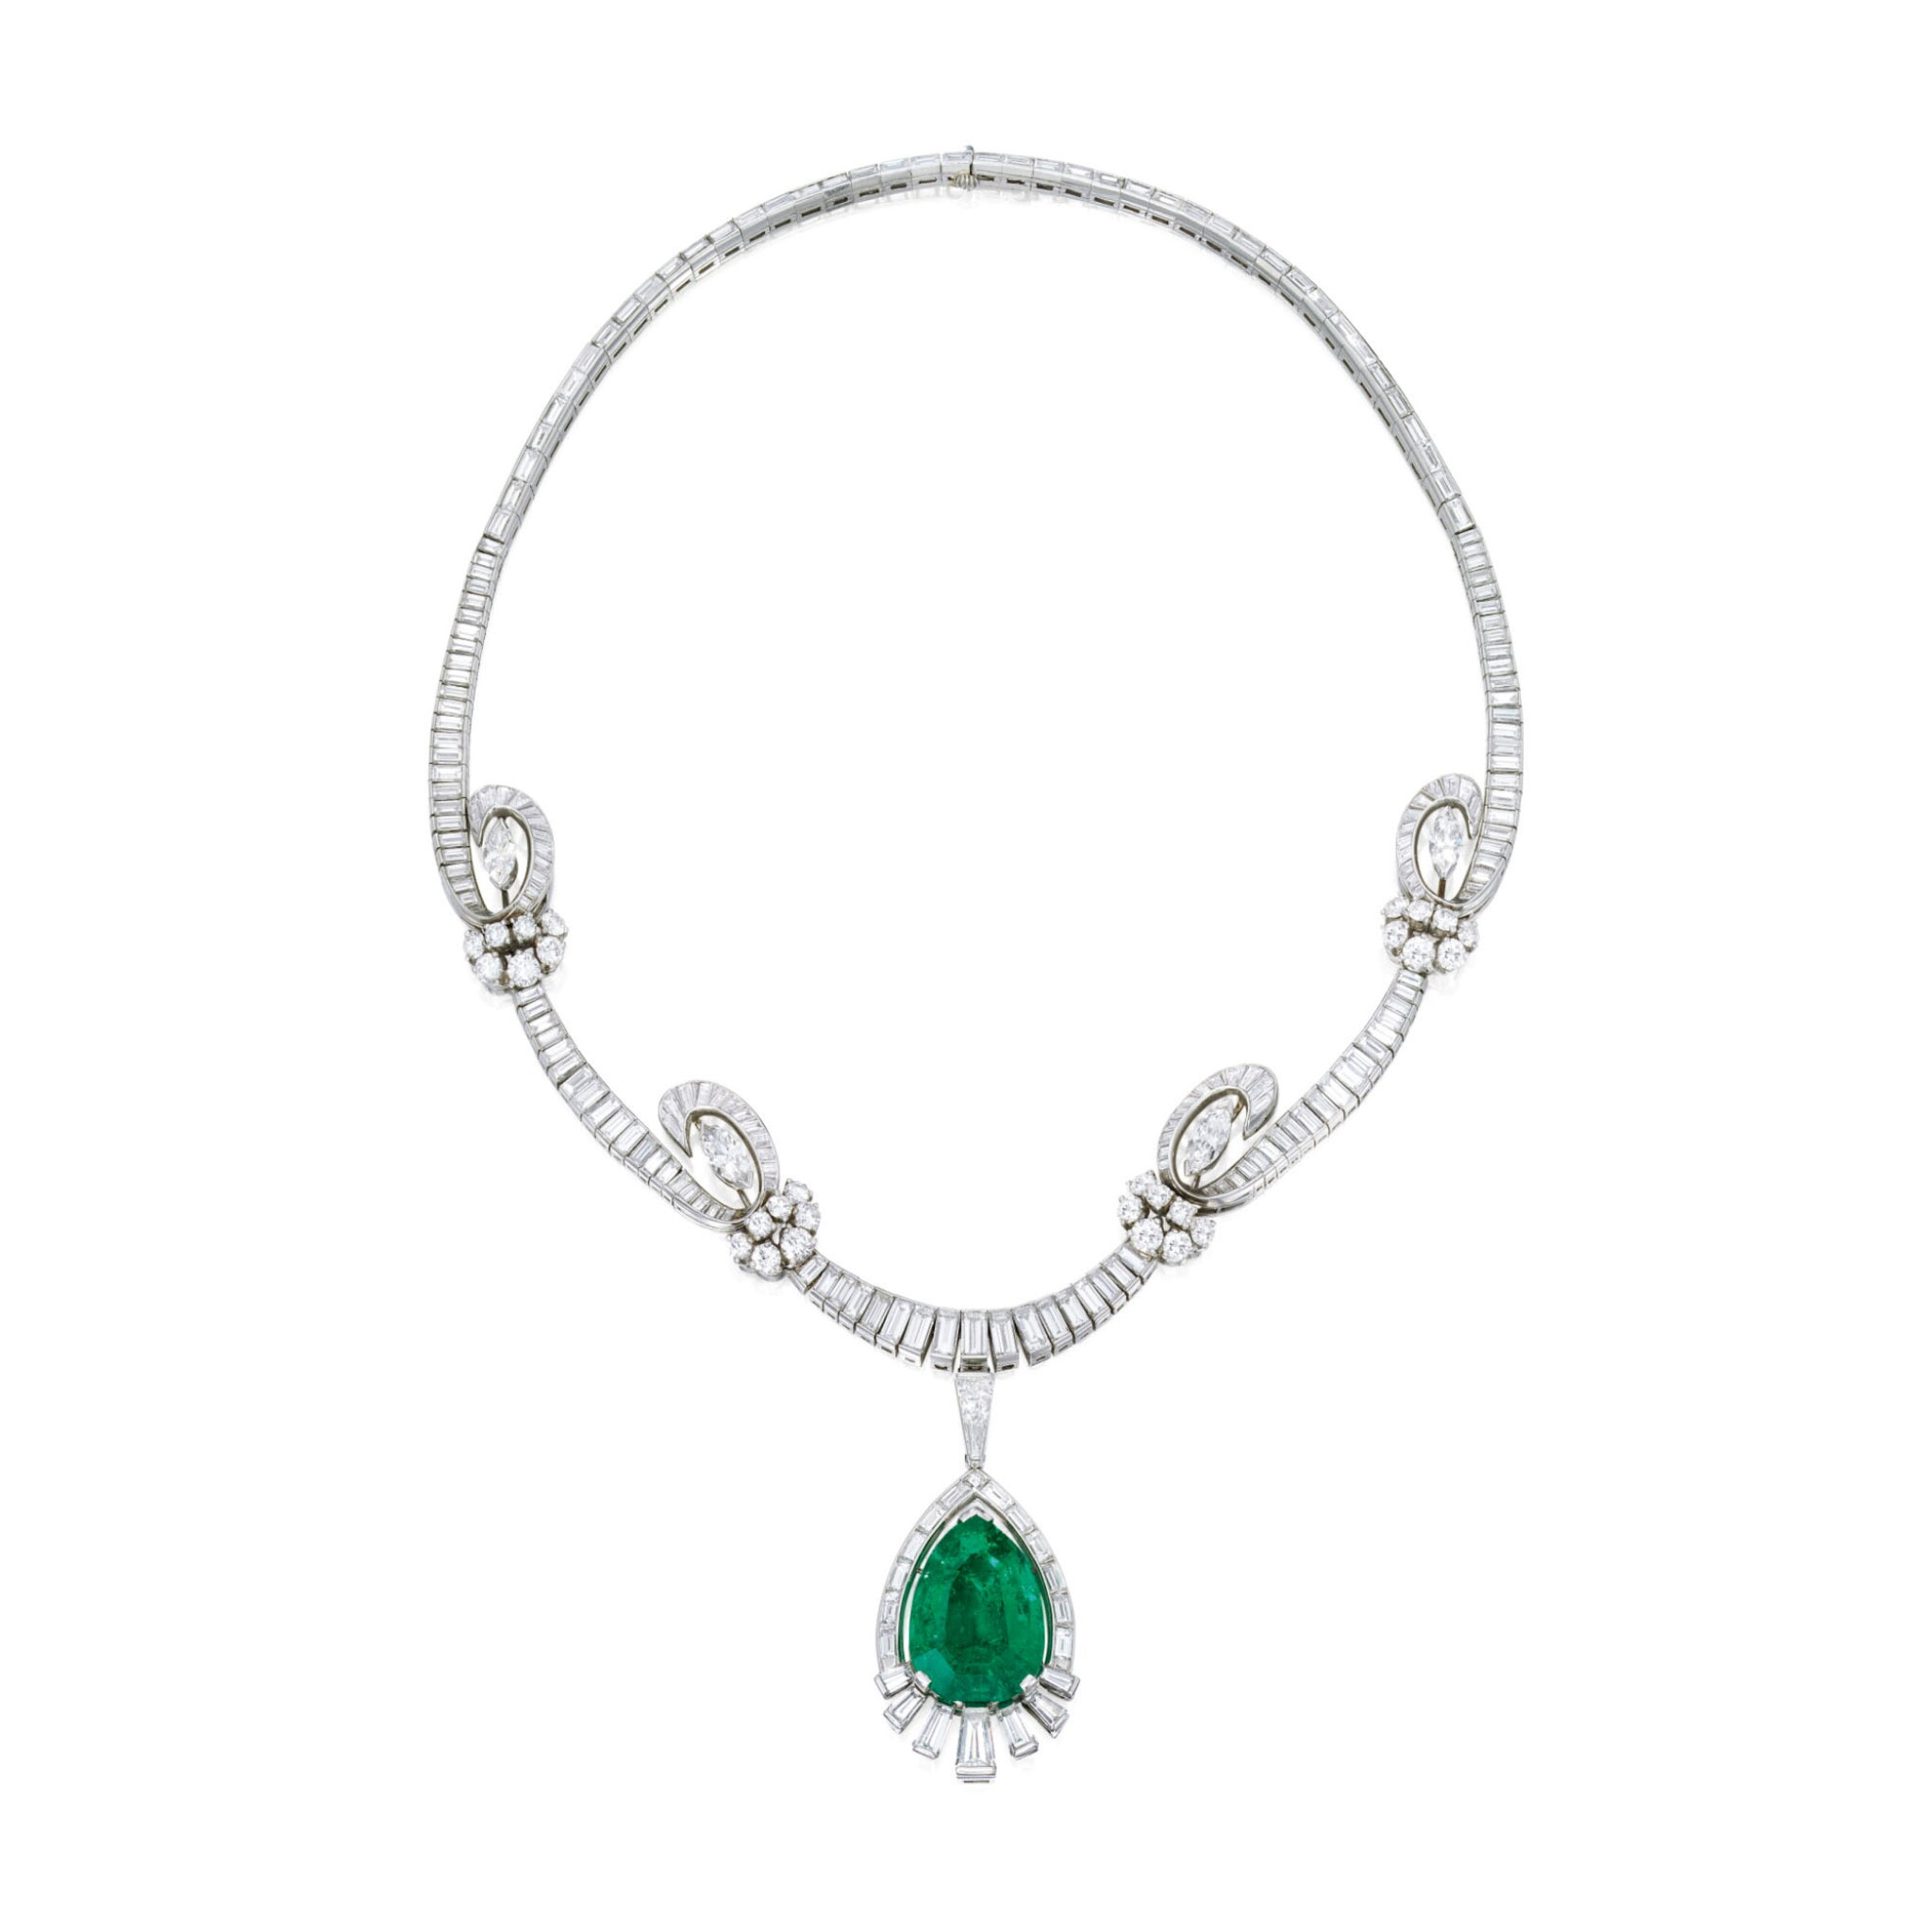 View full screen - View 1 of Lot 459. EMERALD AND DIAMOND PENDANT-NECKLACE, OSCAR HEYMAN & BROTHERS | 祖母綠配鑽石吊墜項鏈,Oscar Heyman & Brothers.